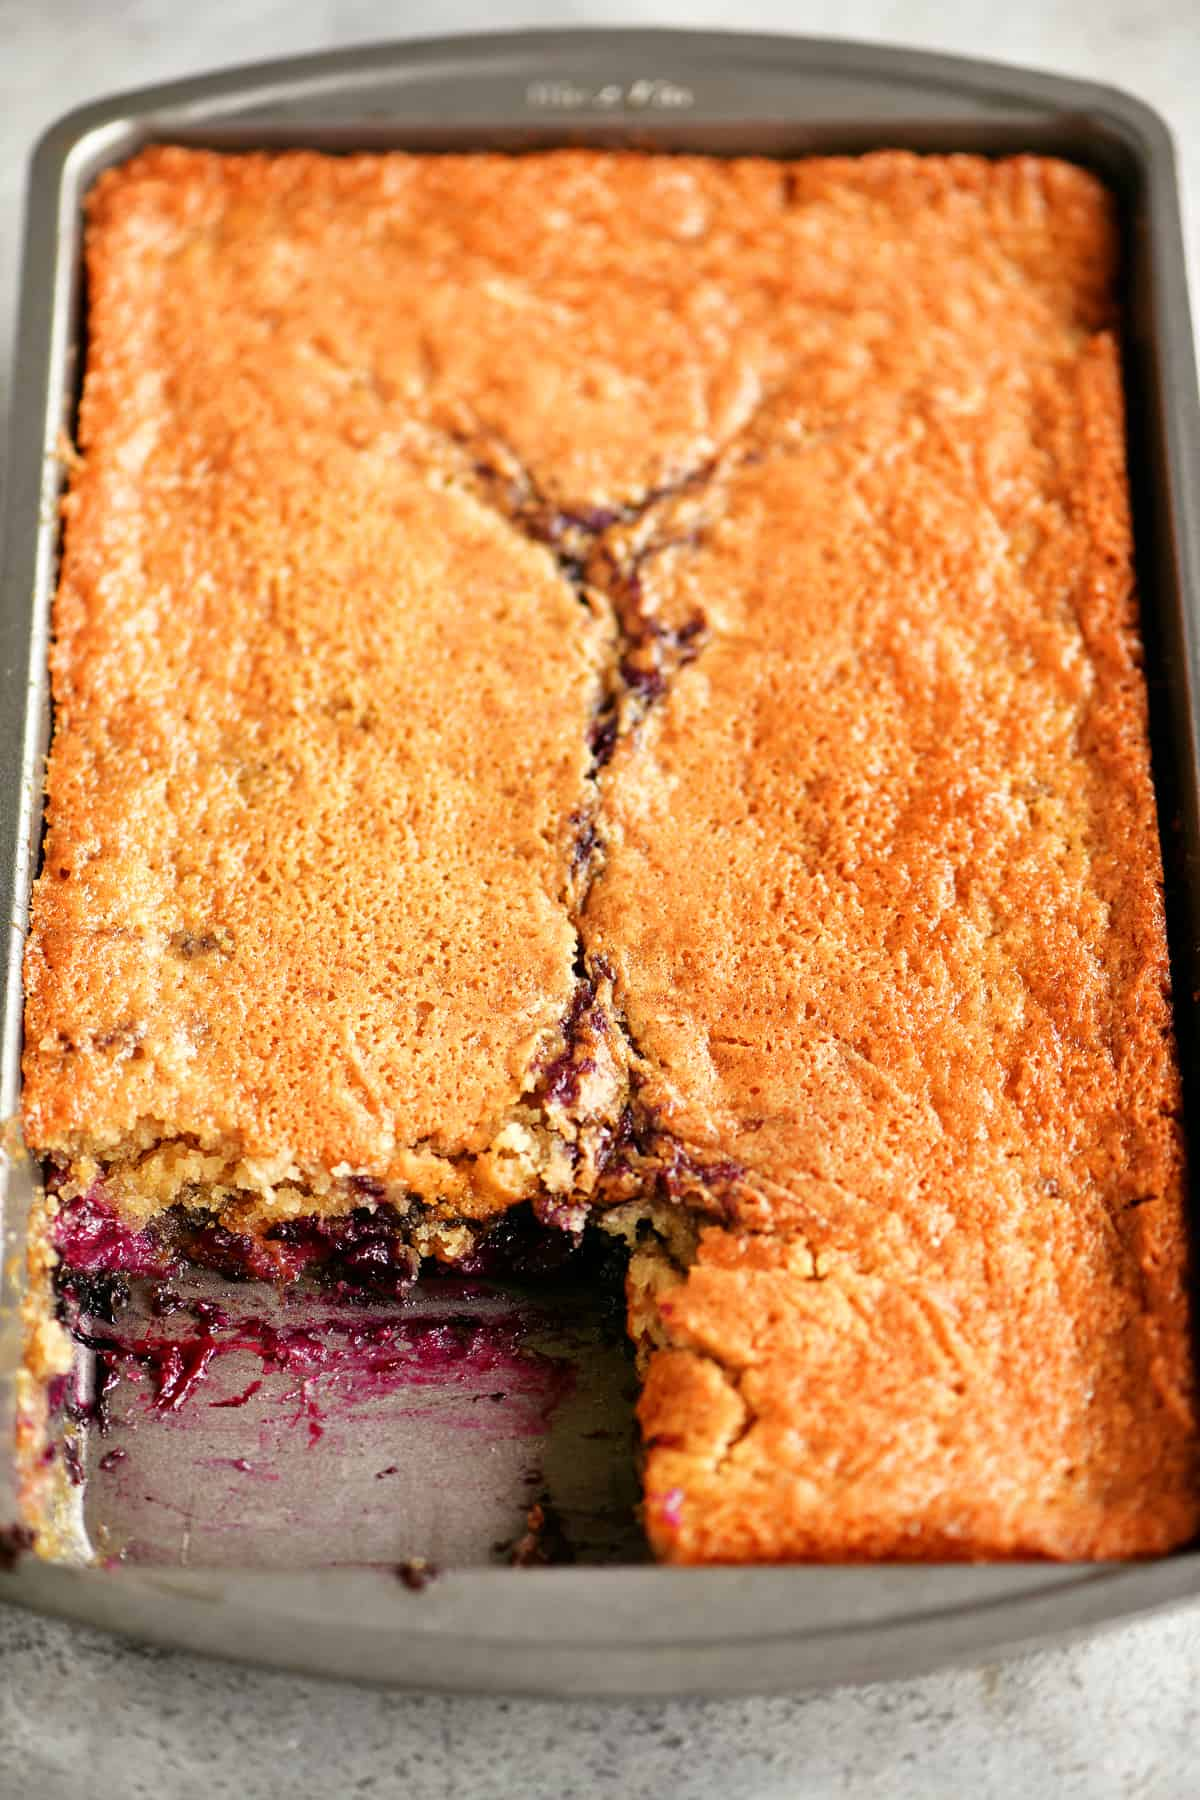 pan of blueberry cobbler with a slice removed